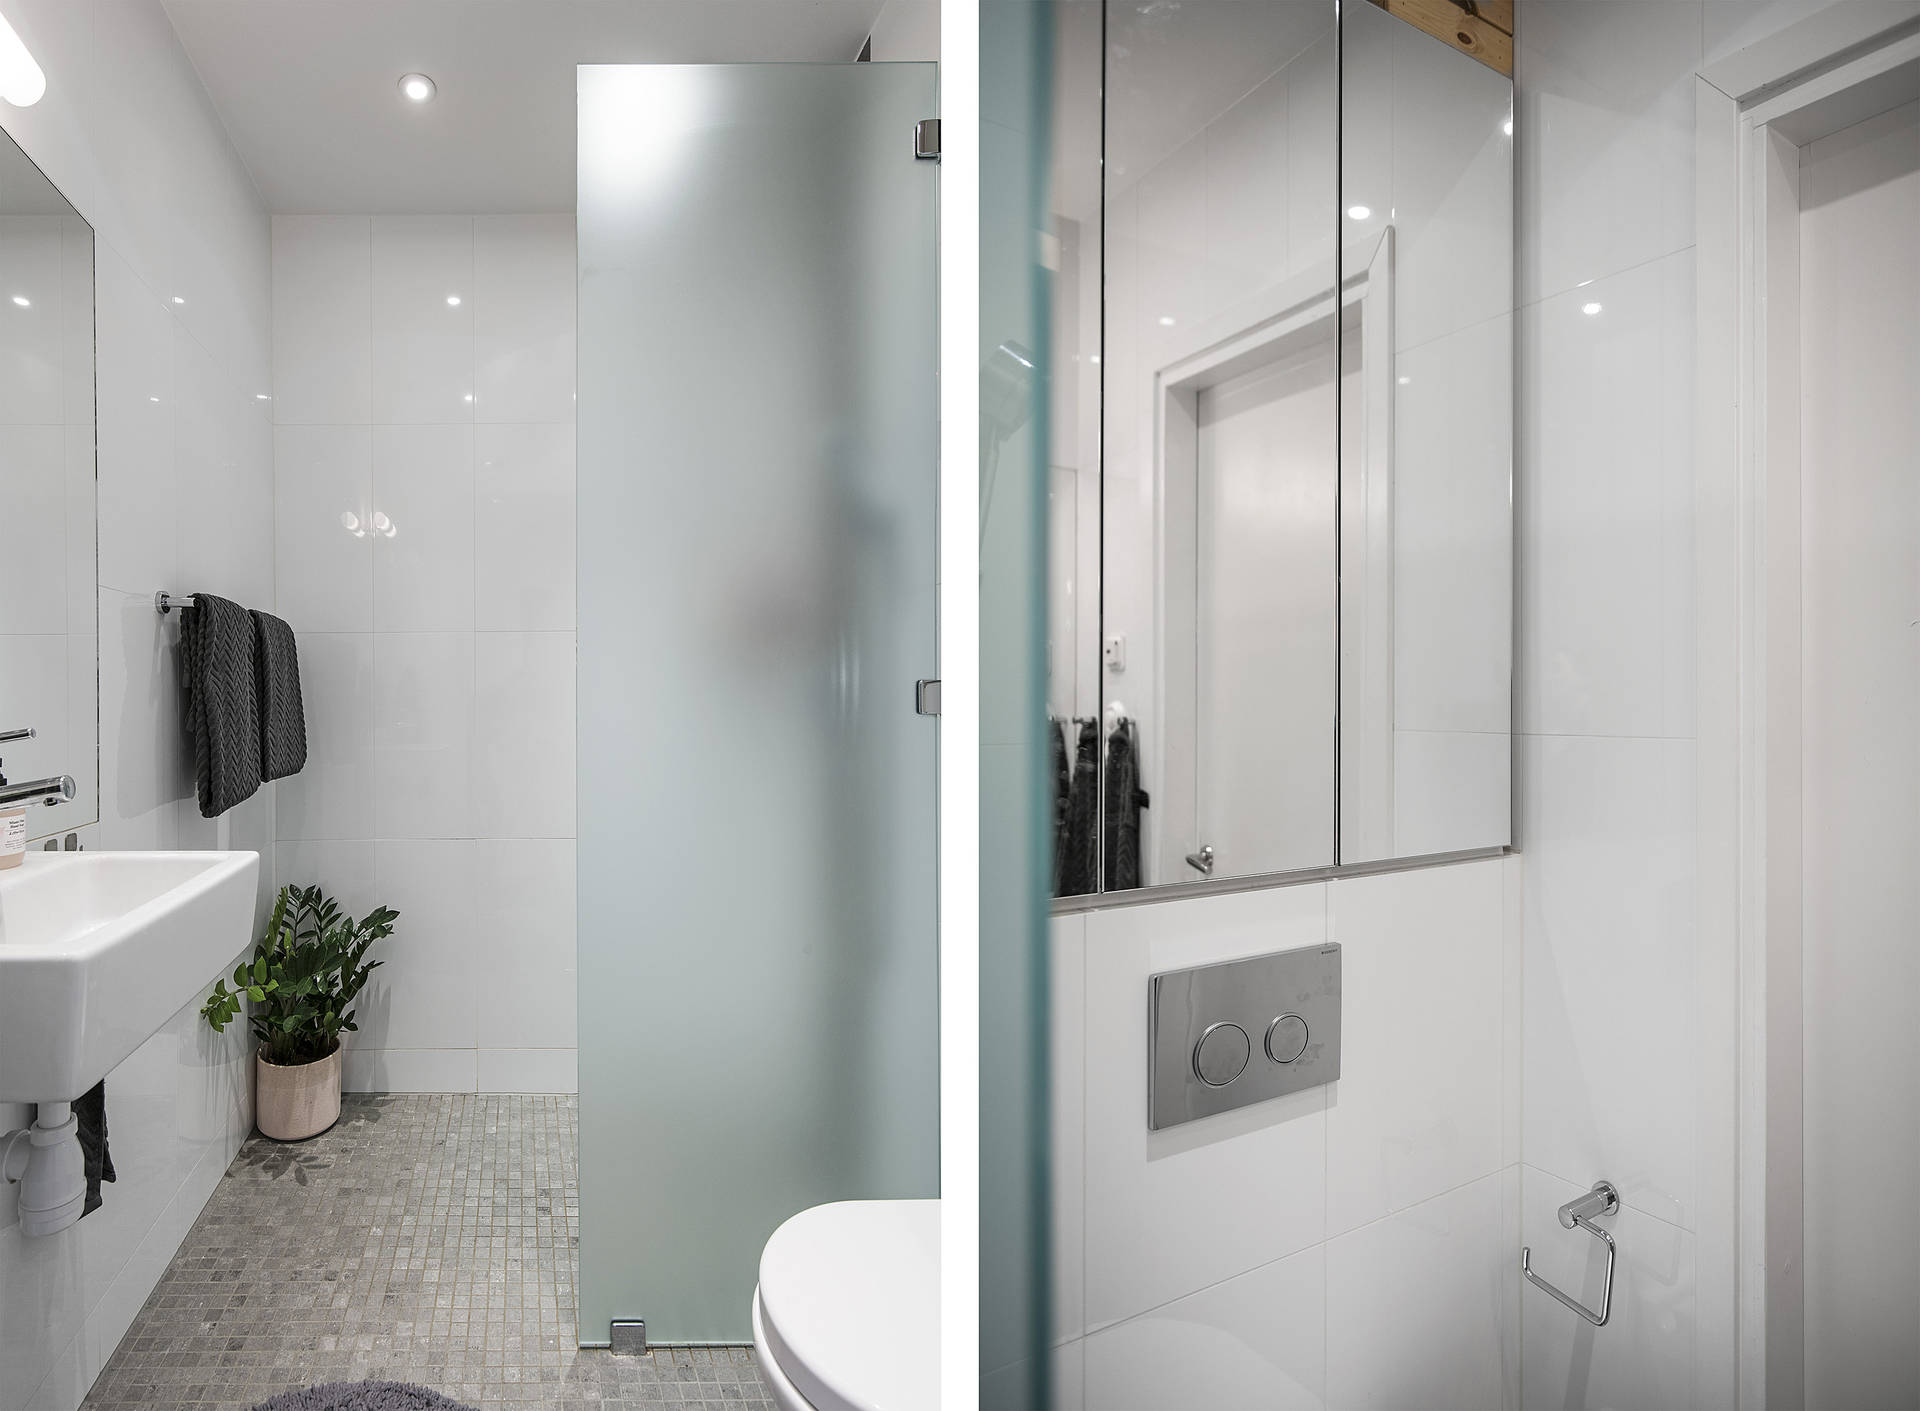 White tiles, glass partition and mirrors all helps create the illusion of space.